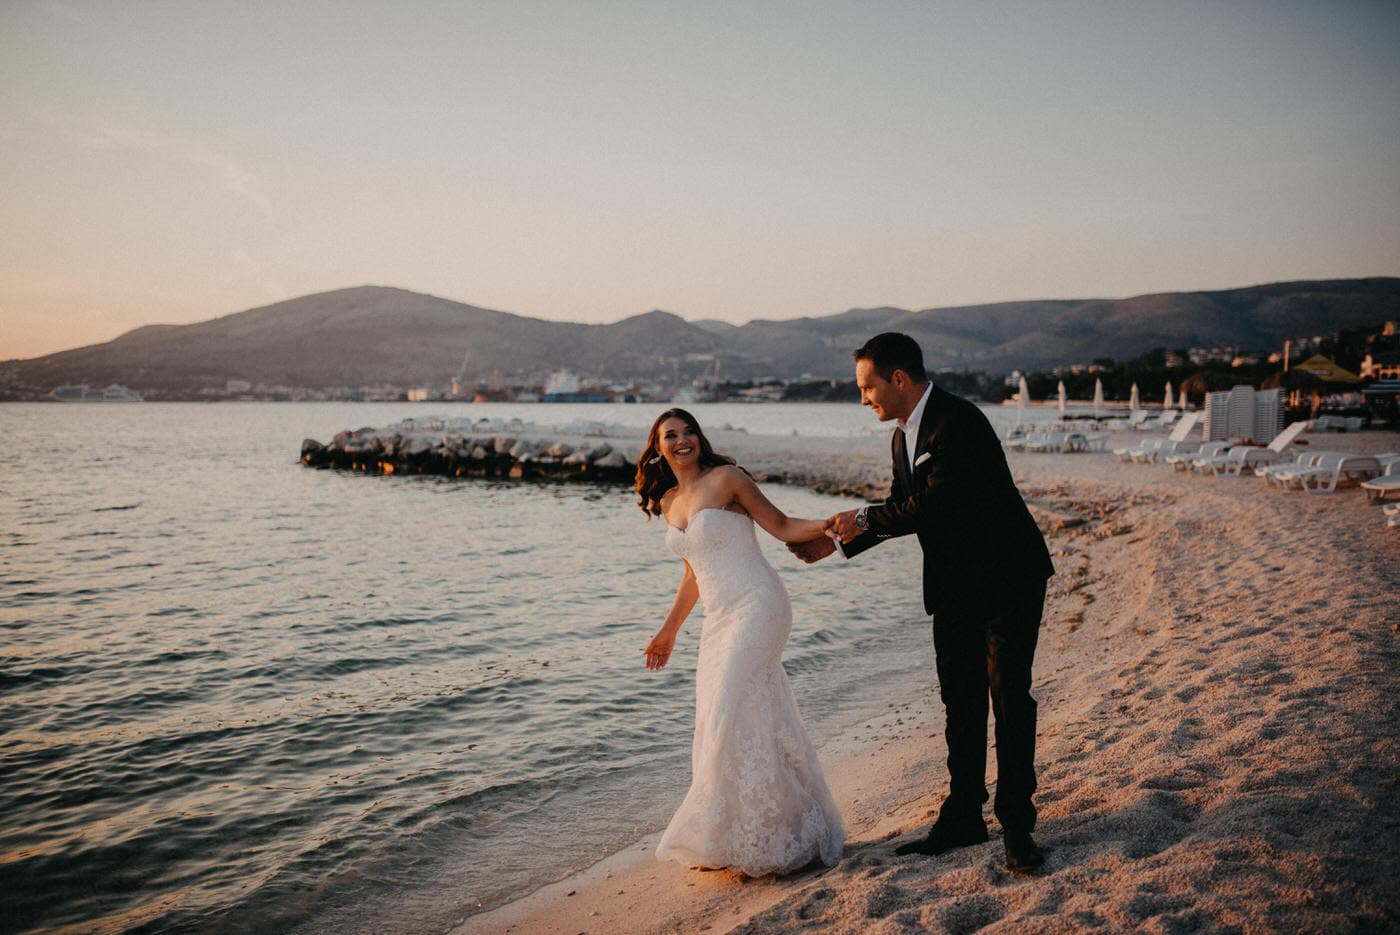 Wedding photographer Split Croatia